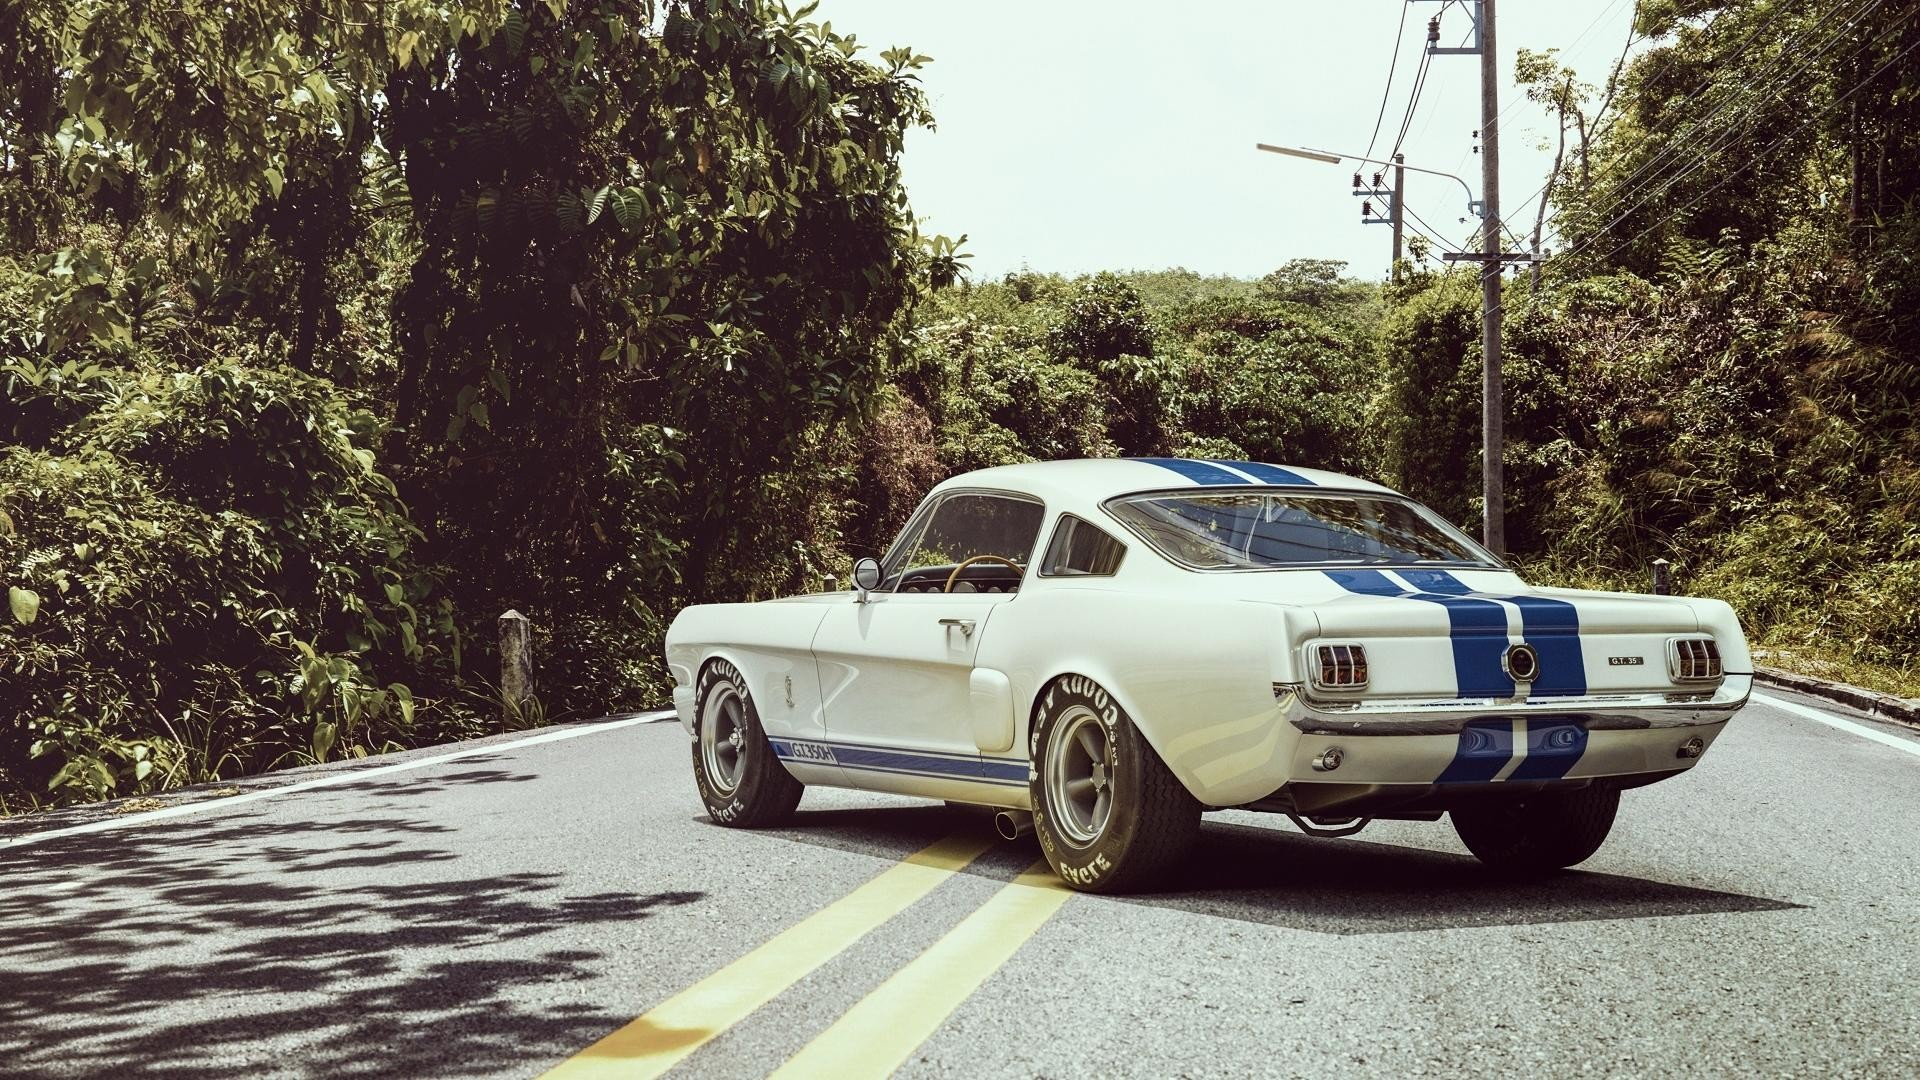 Muscle Cars Wallpapers 1080p Old School Cars Wallpaper 183 ①